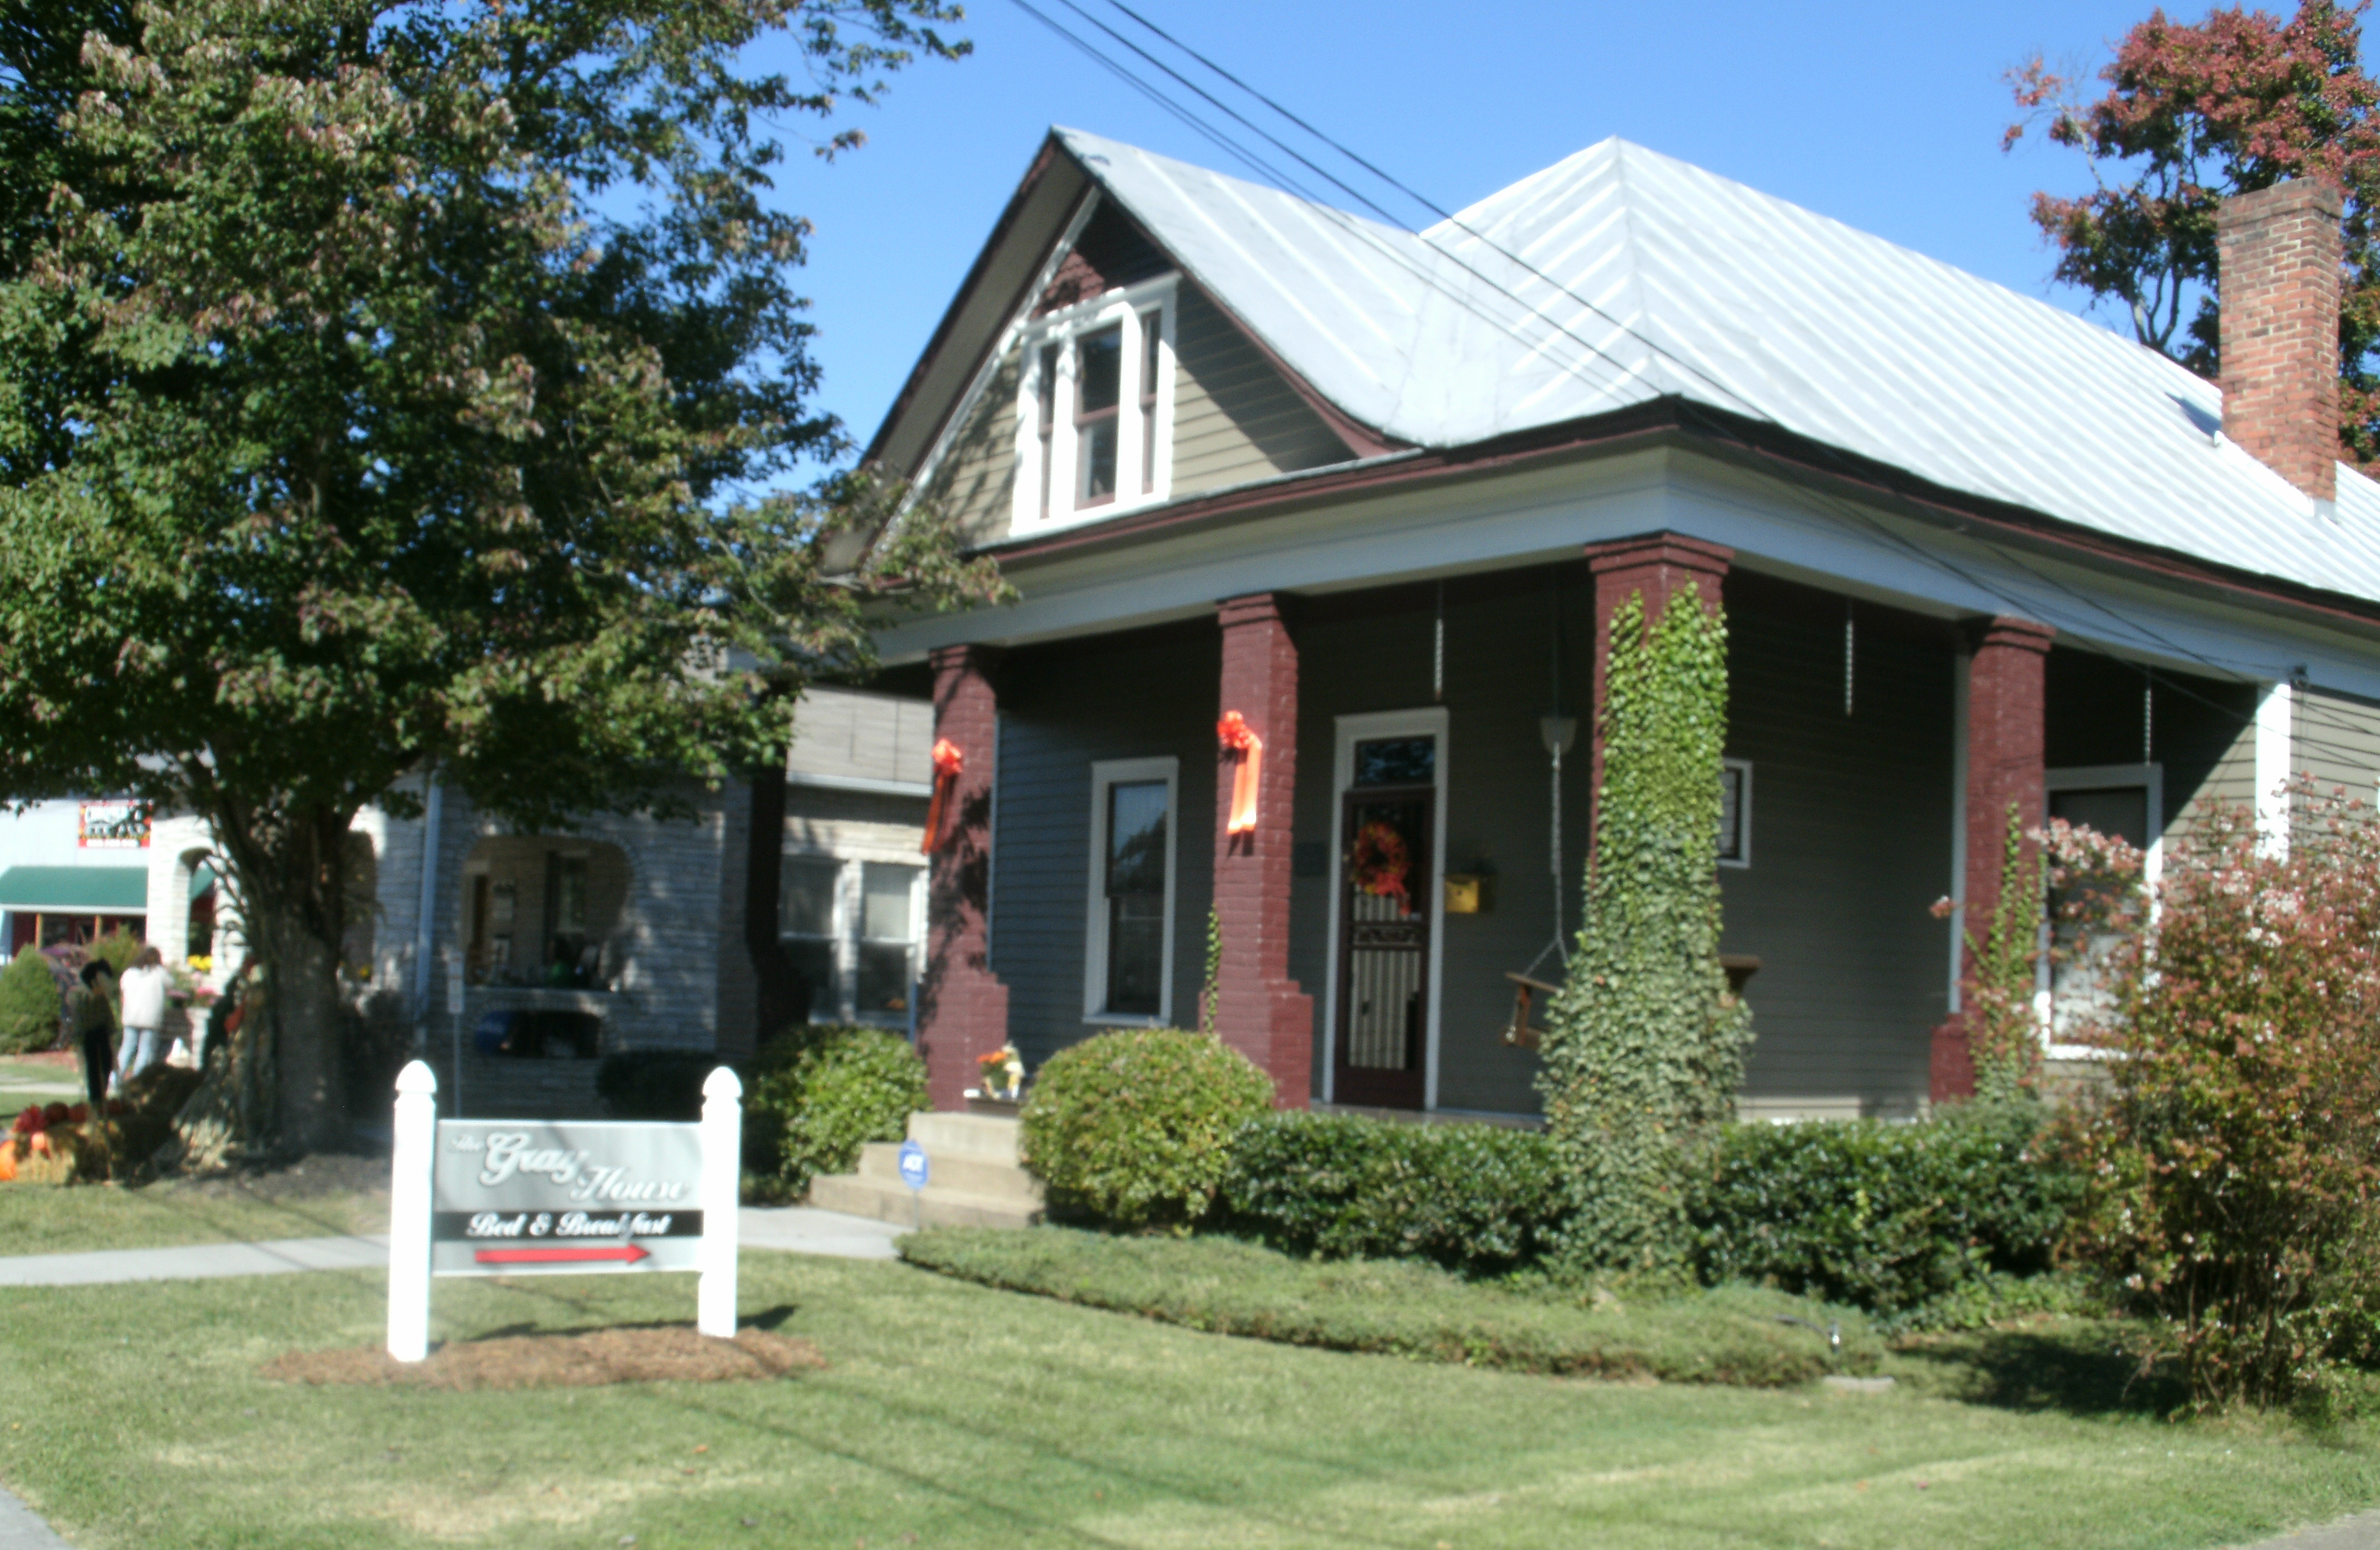 The Gray House Bed & Breakfast